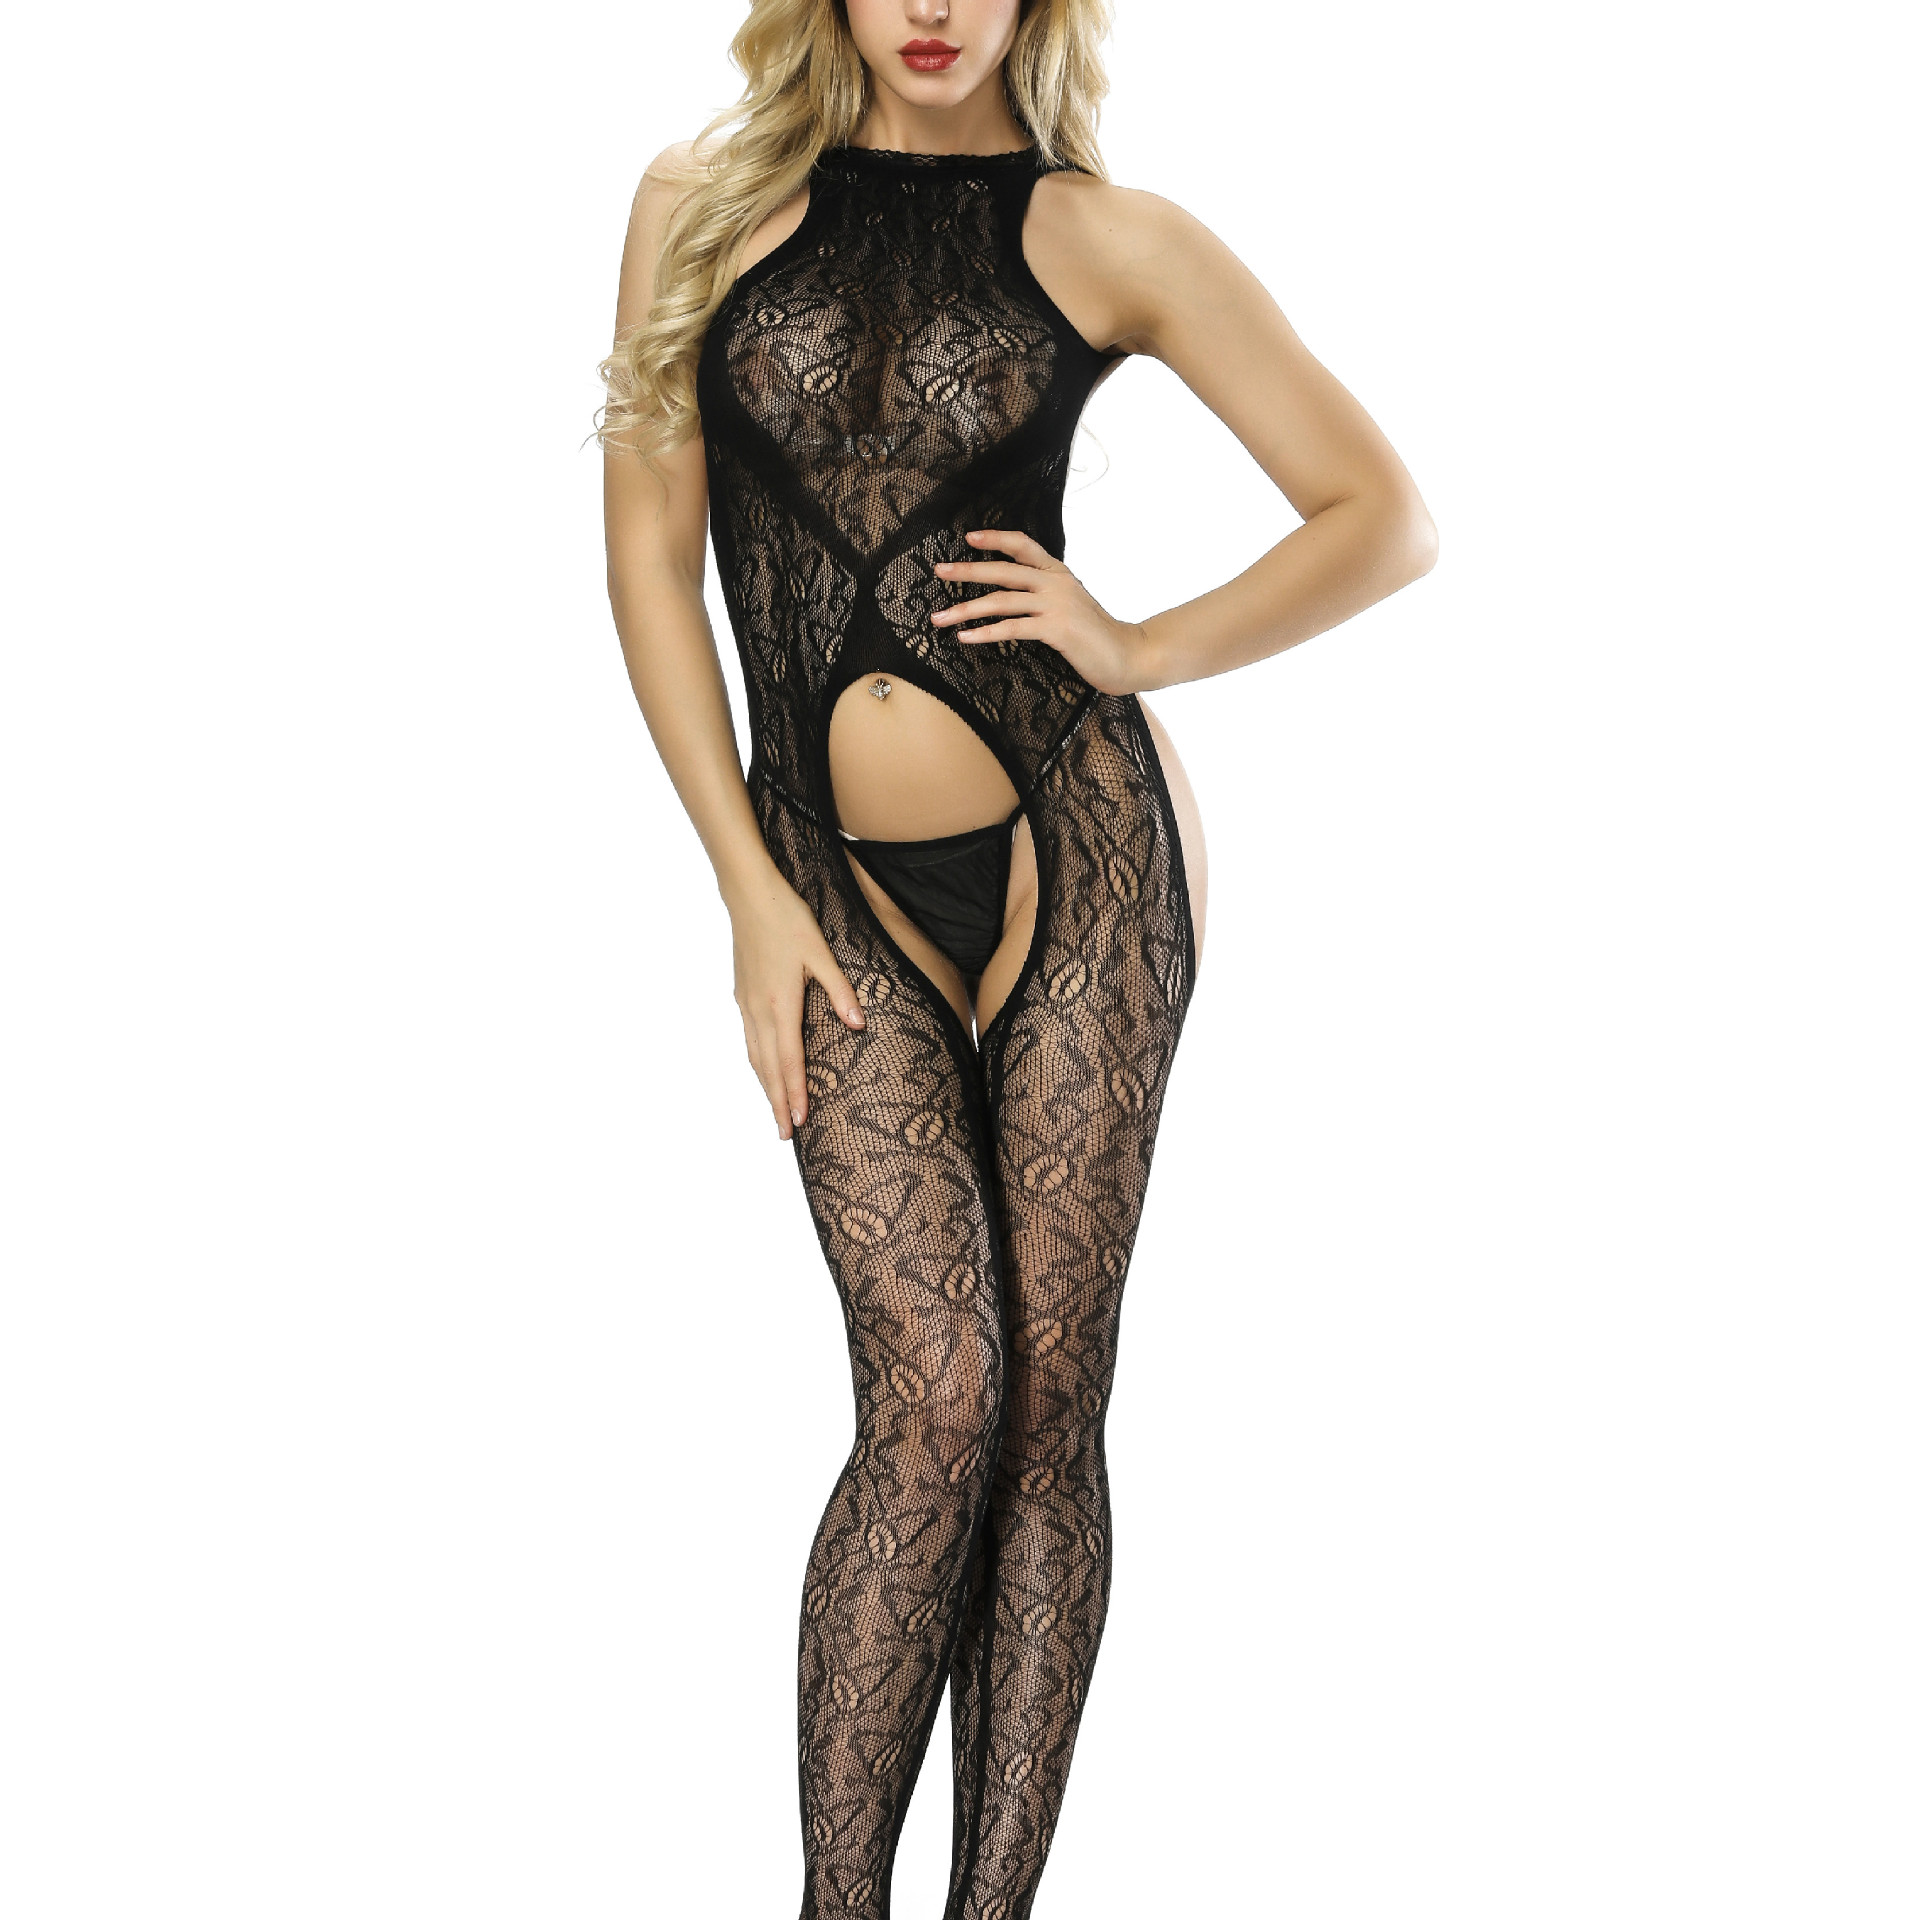 Women's Exotic Apparel Back To Search Resultsnovelty & Special Use Disciplined Sexy Lingerie Uniform Tempts To Open Sexy Pajamas Stockings Woman Bondage Clothes Crotchless Bodysuit Ropa Sexy Para El Sexo A Complete Range Of Specifications